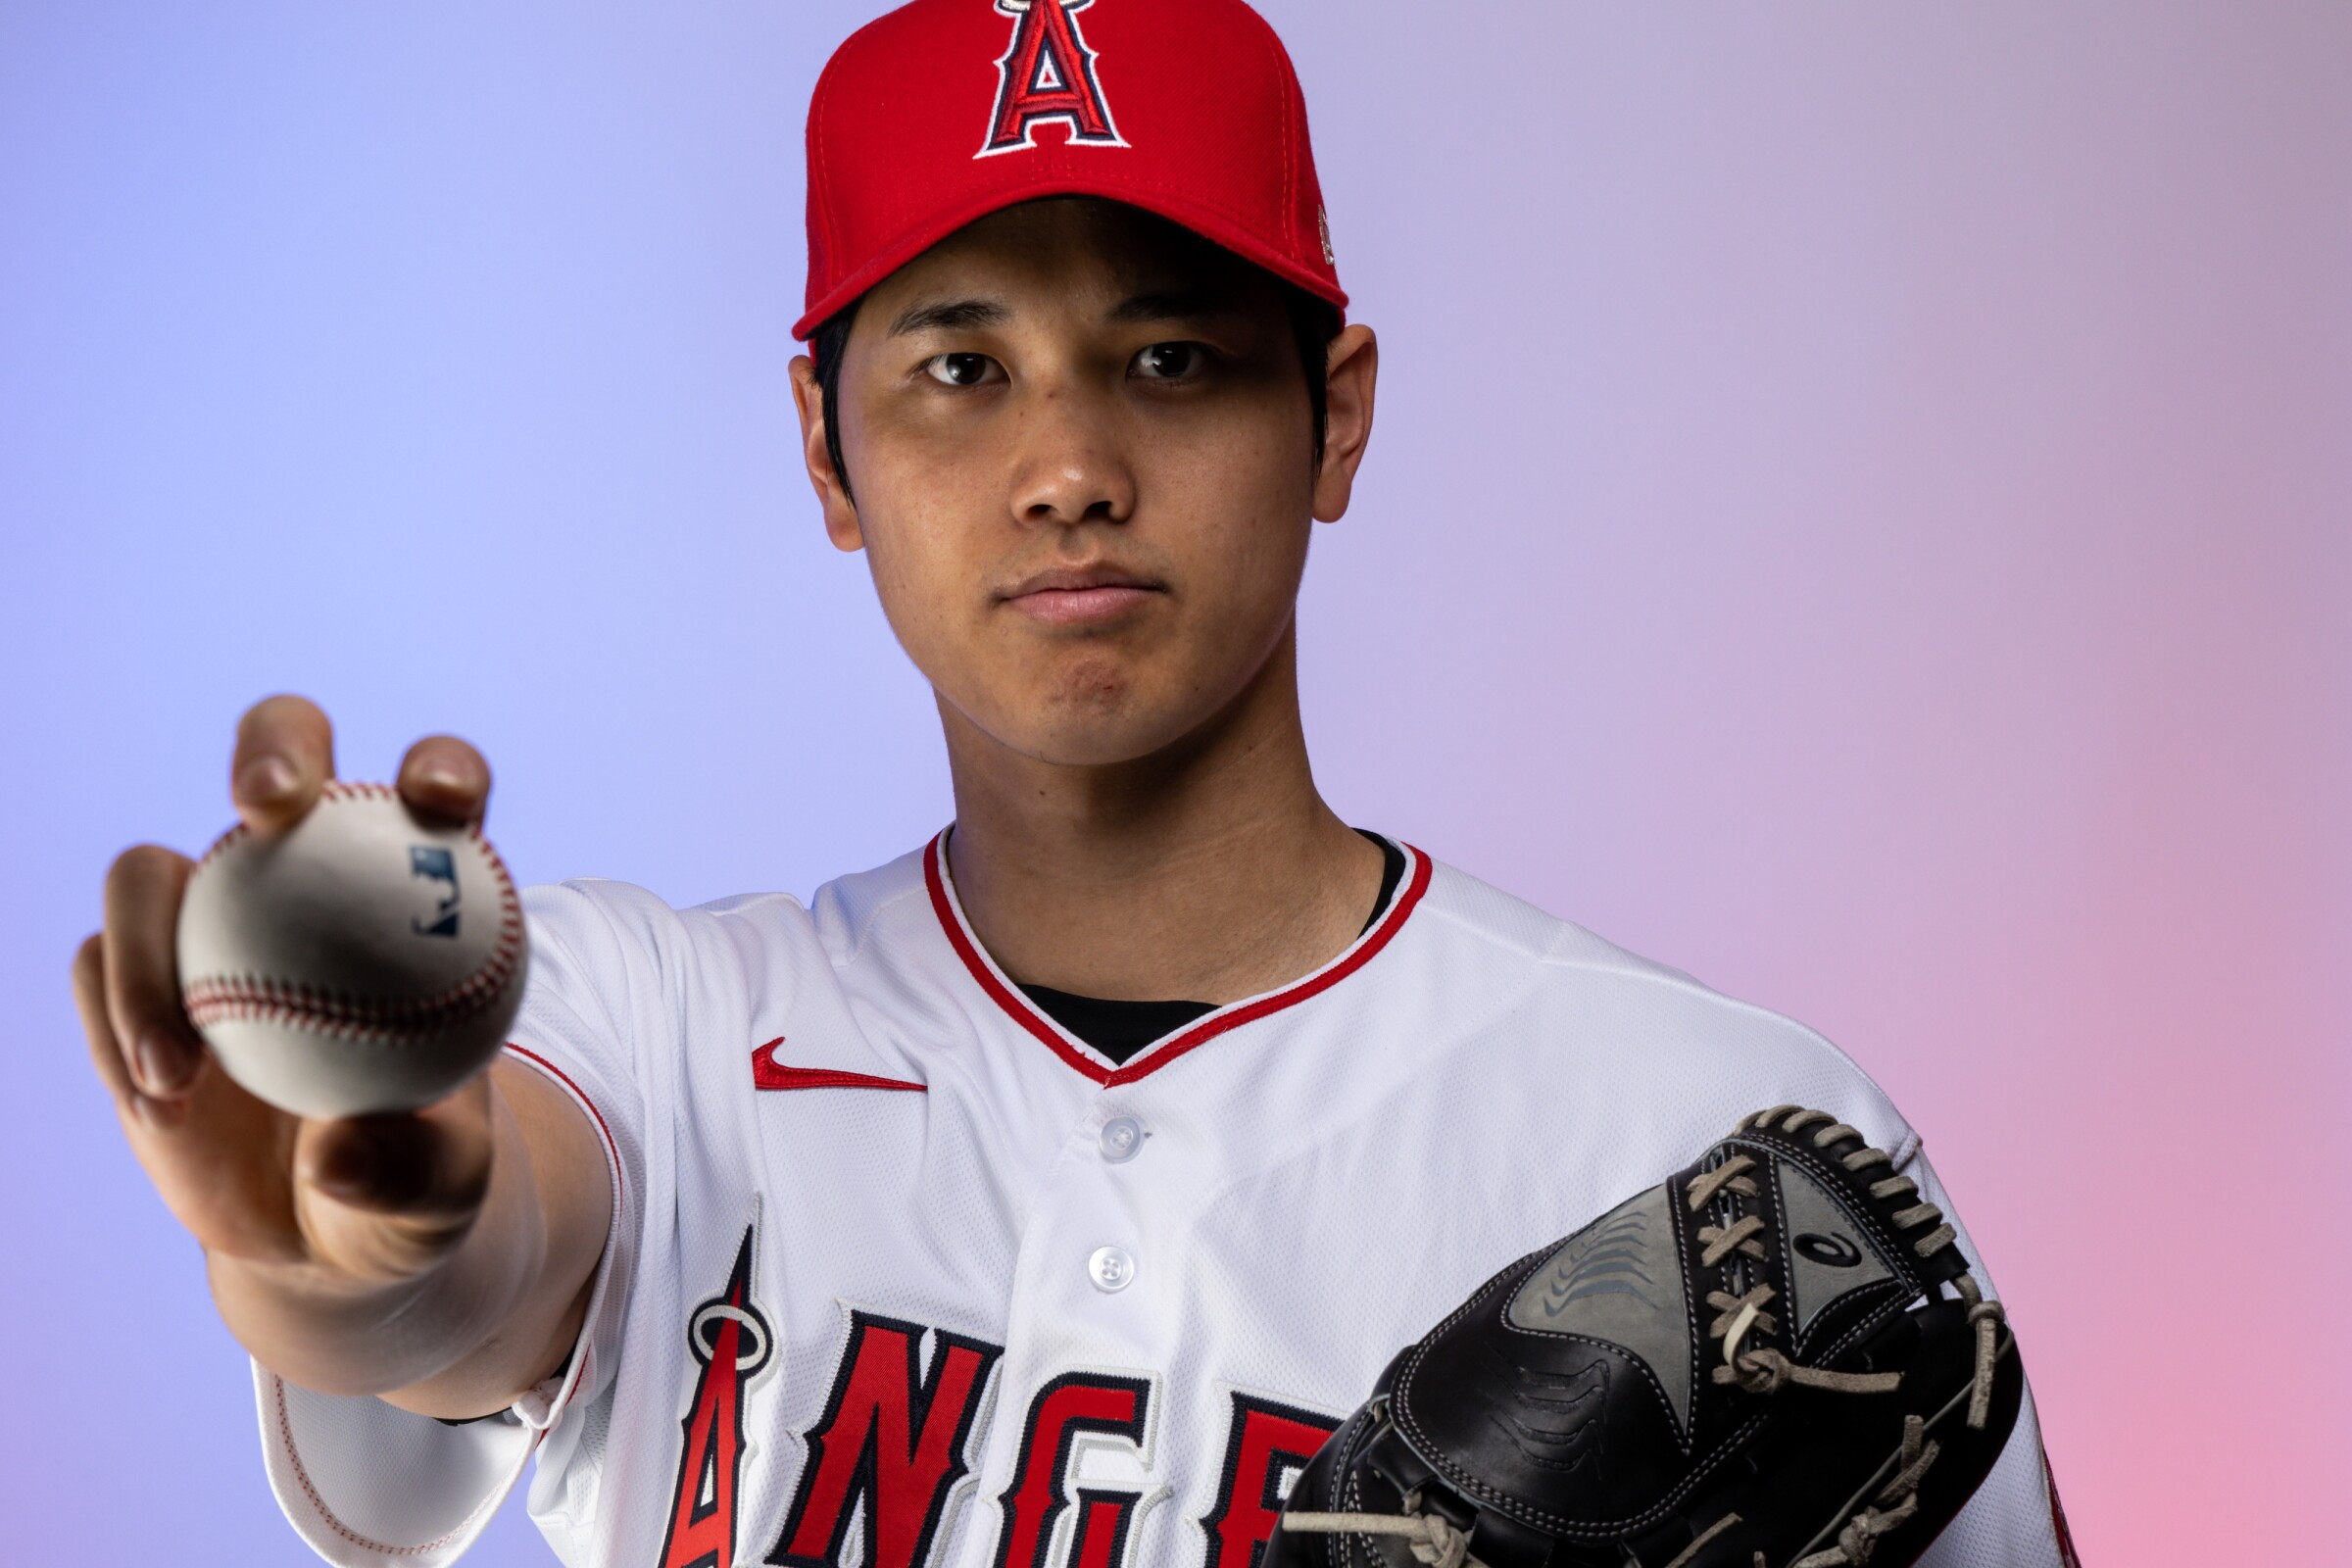 Los Angeles Angels left-handed pitcher/designated hitter Shohei Ohtani.